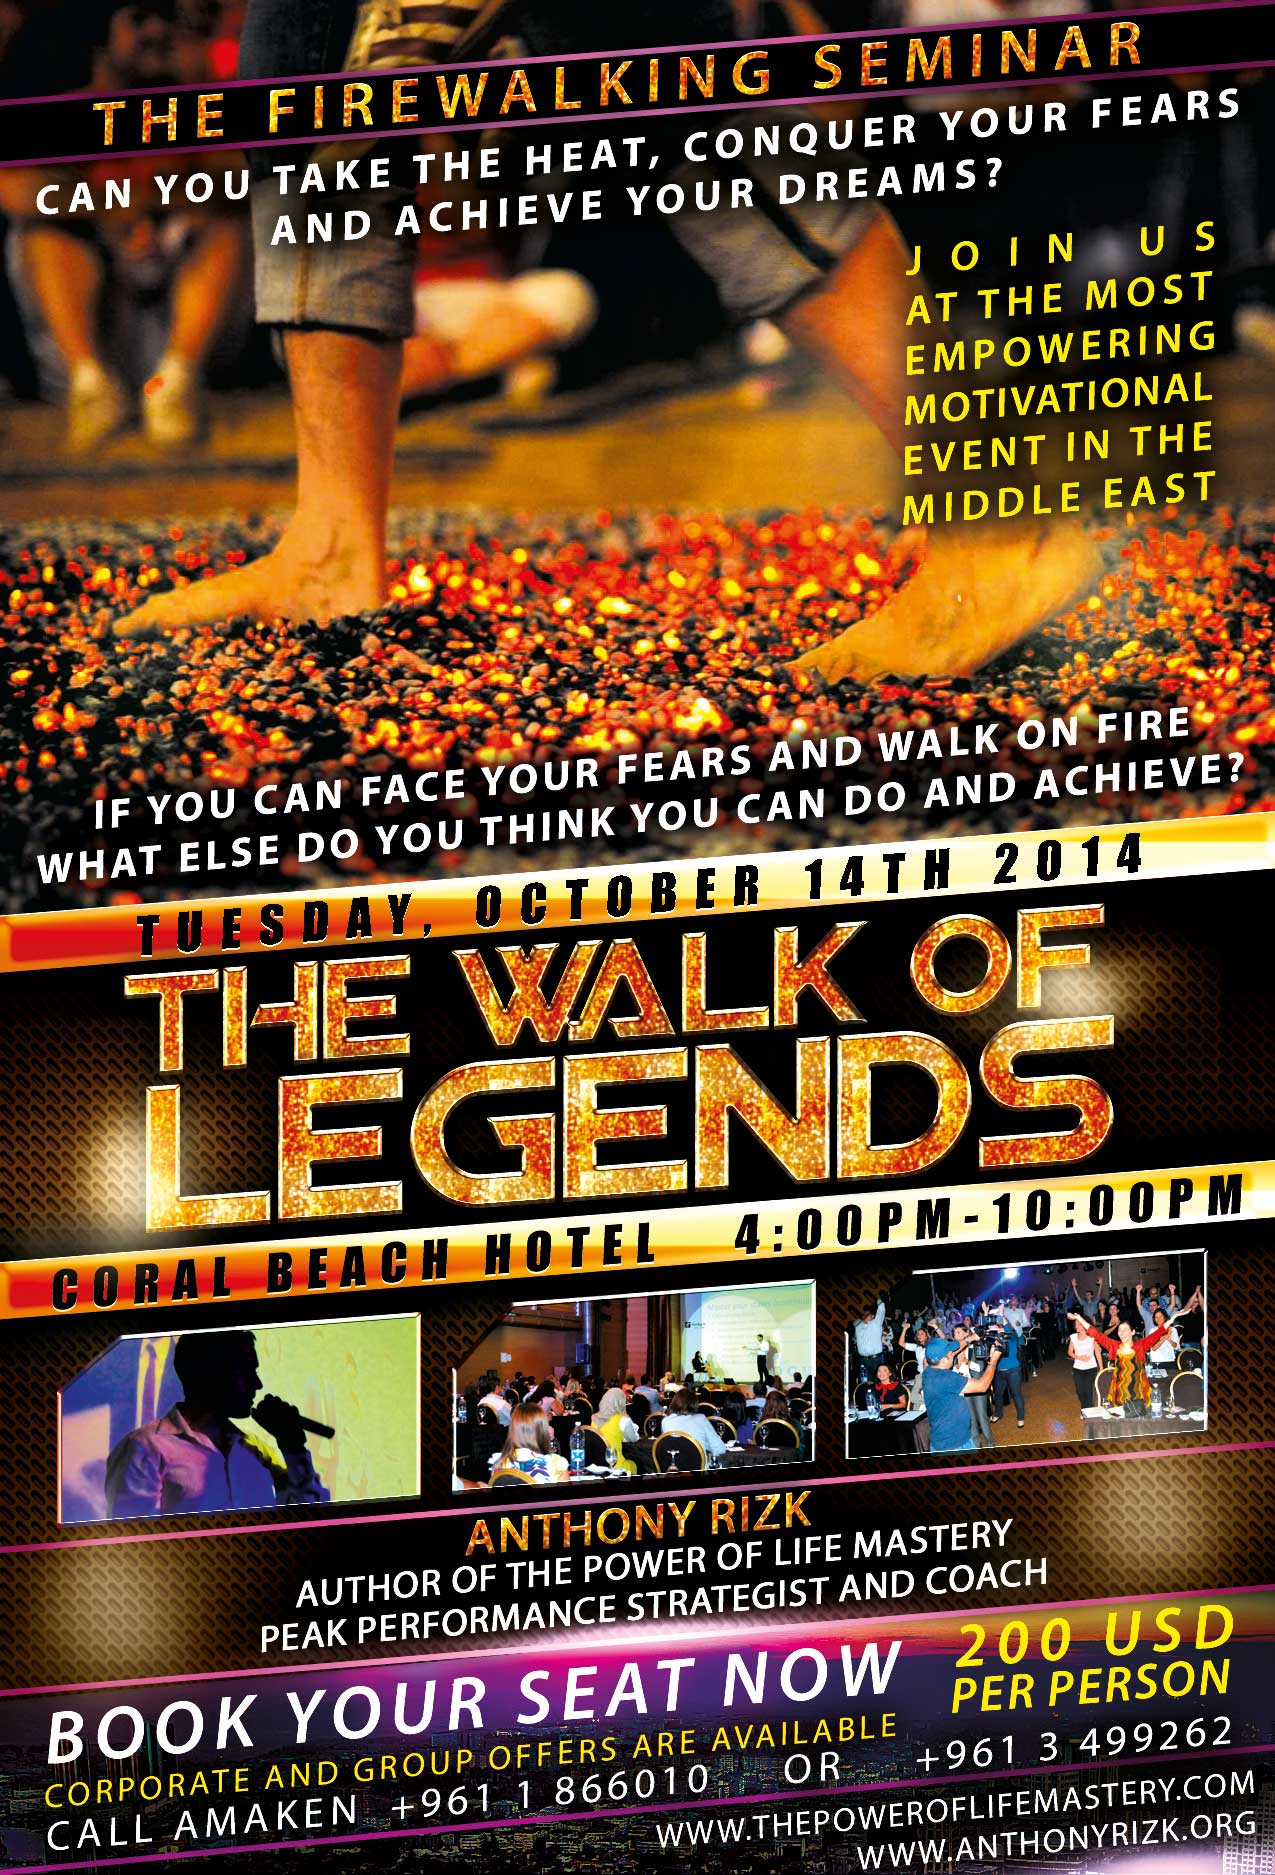 Firewalking Seminar in Lebanon: The Walk of Legends